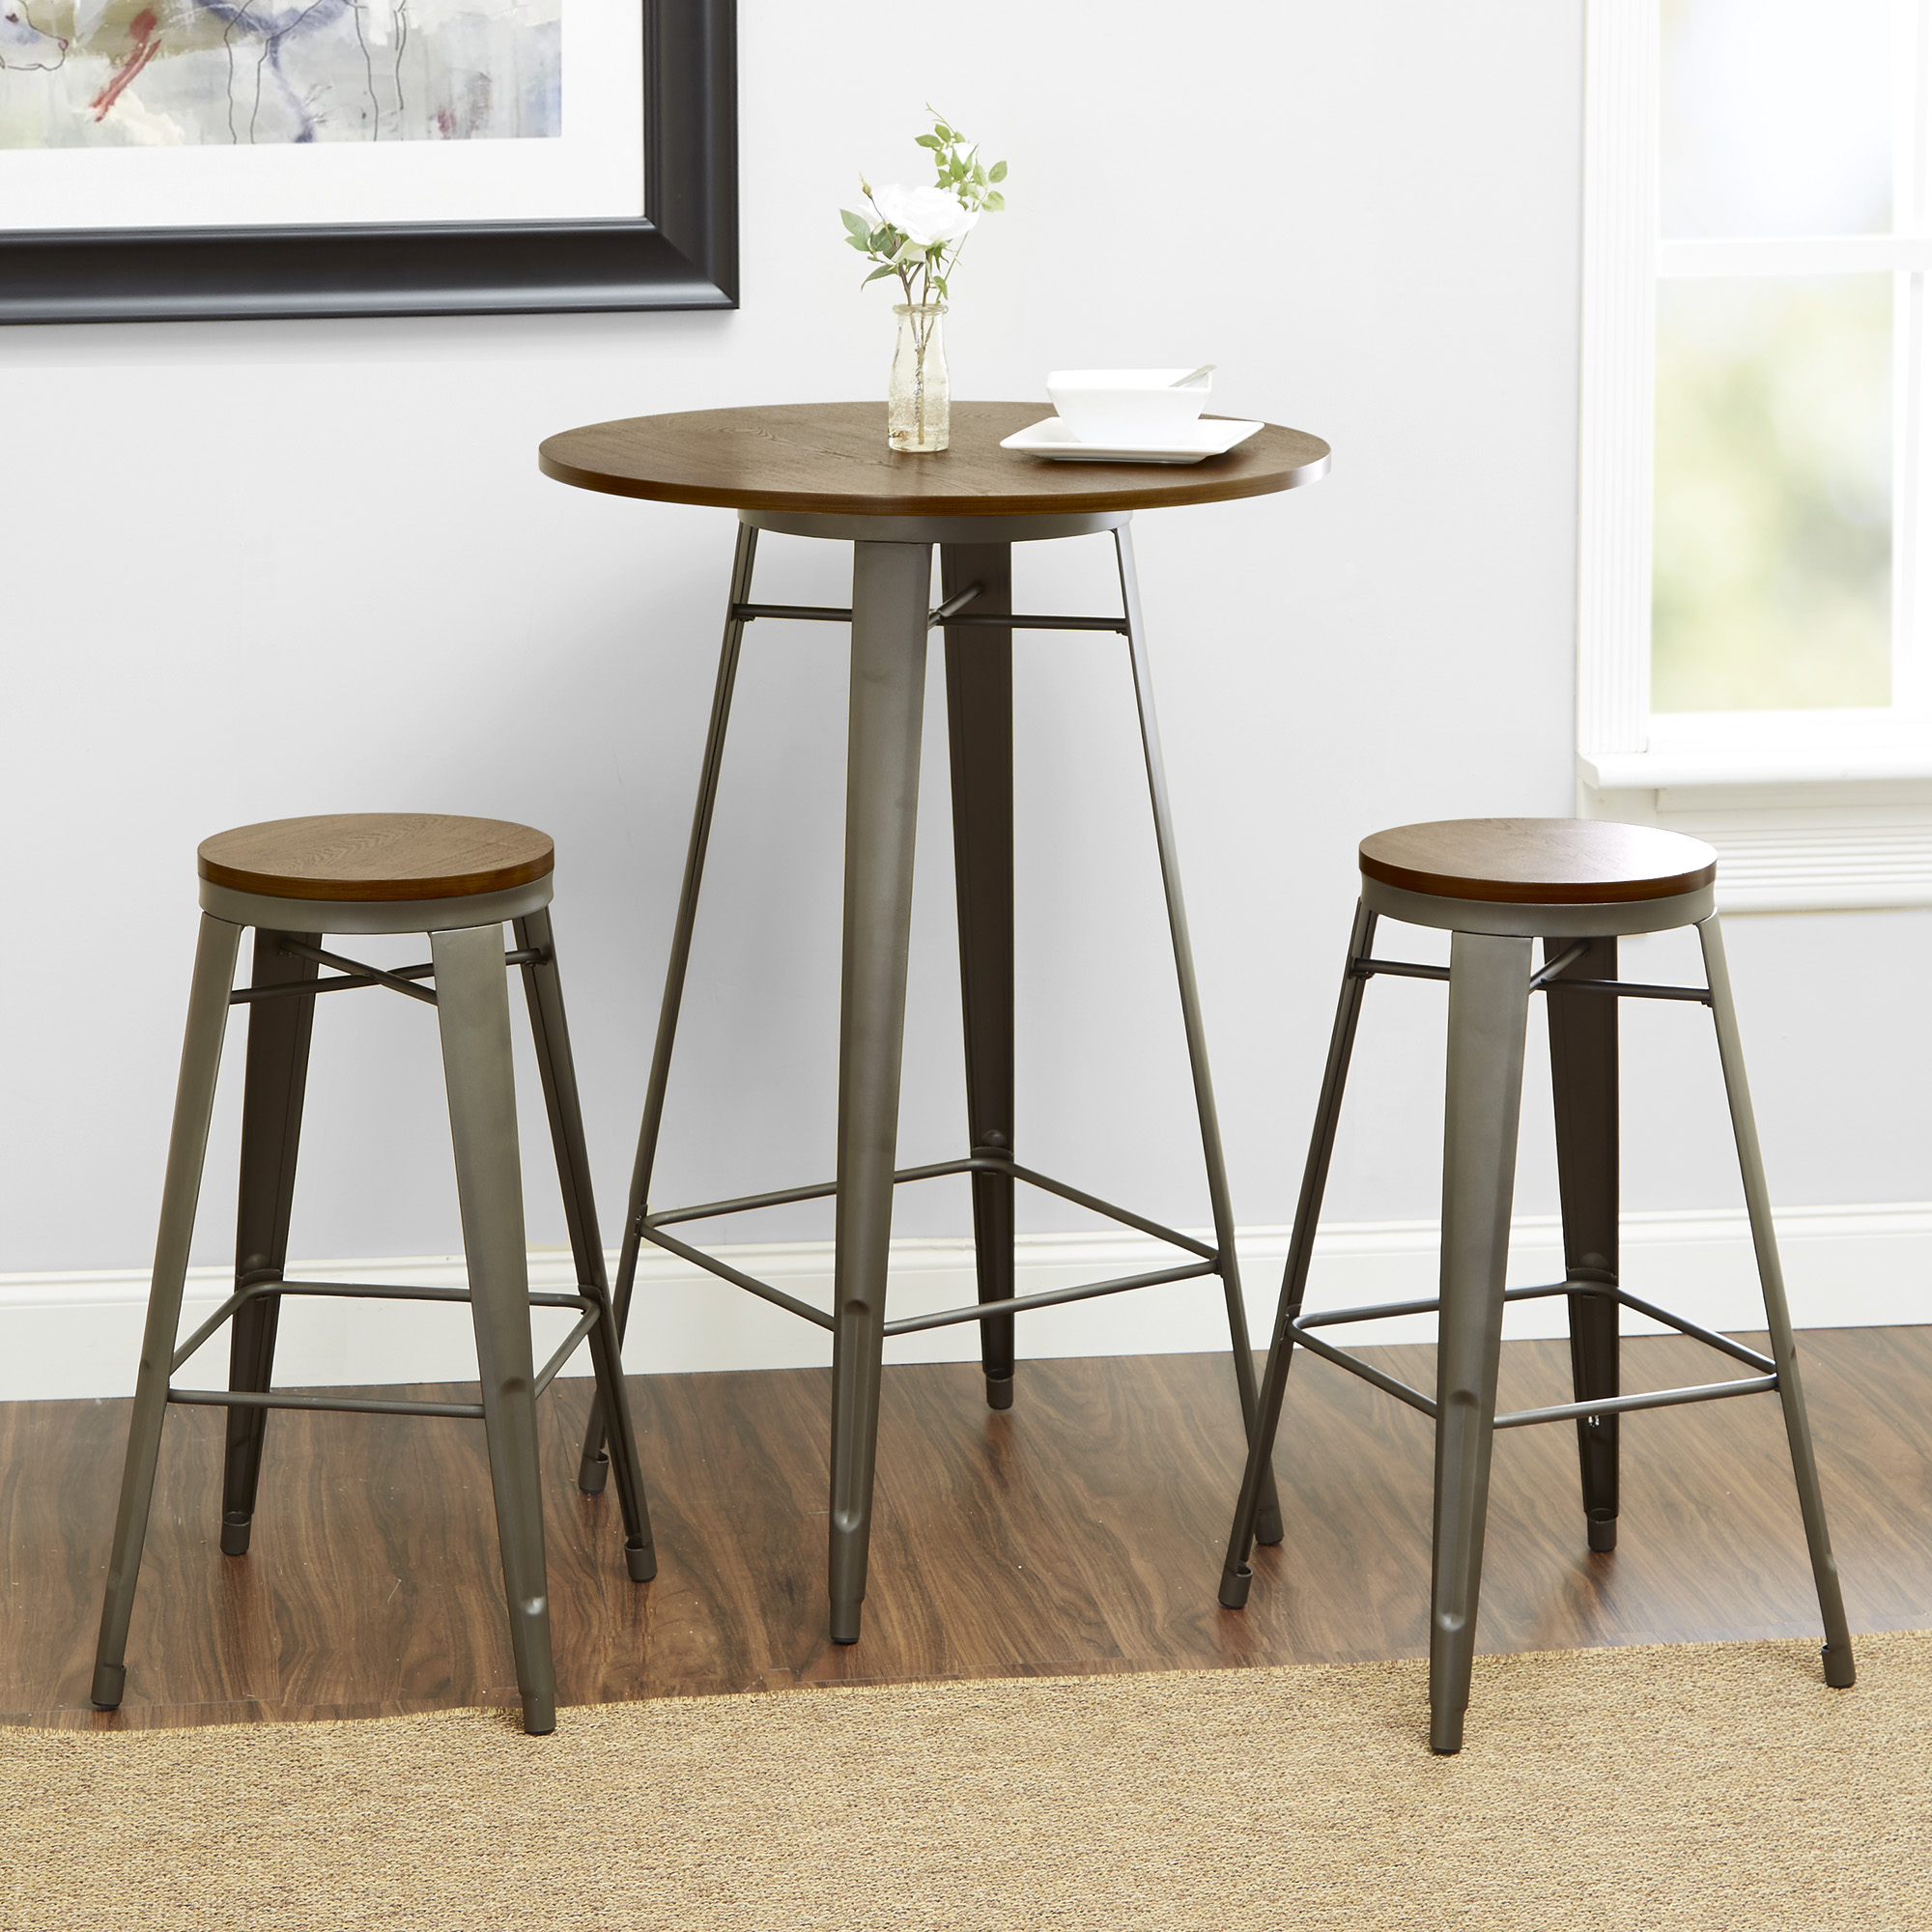 Better Homes And Gardens Harper 3 Piece Pub Set, Multiple Colors    Walmart.com